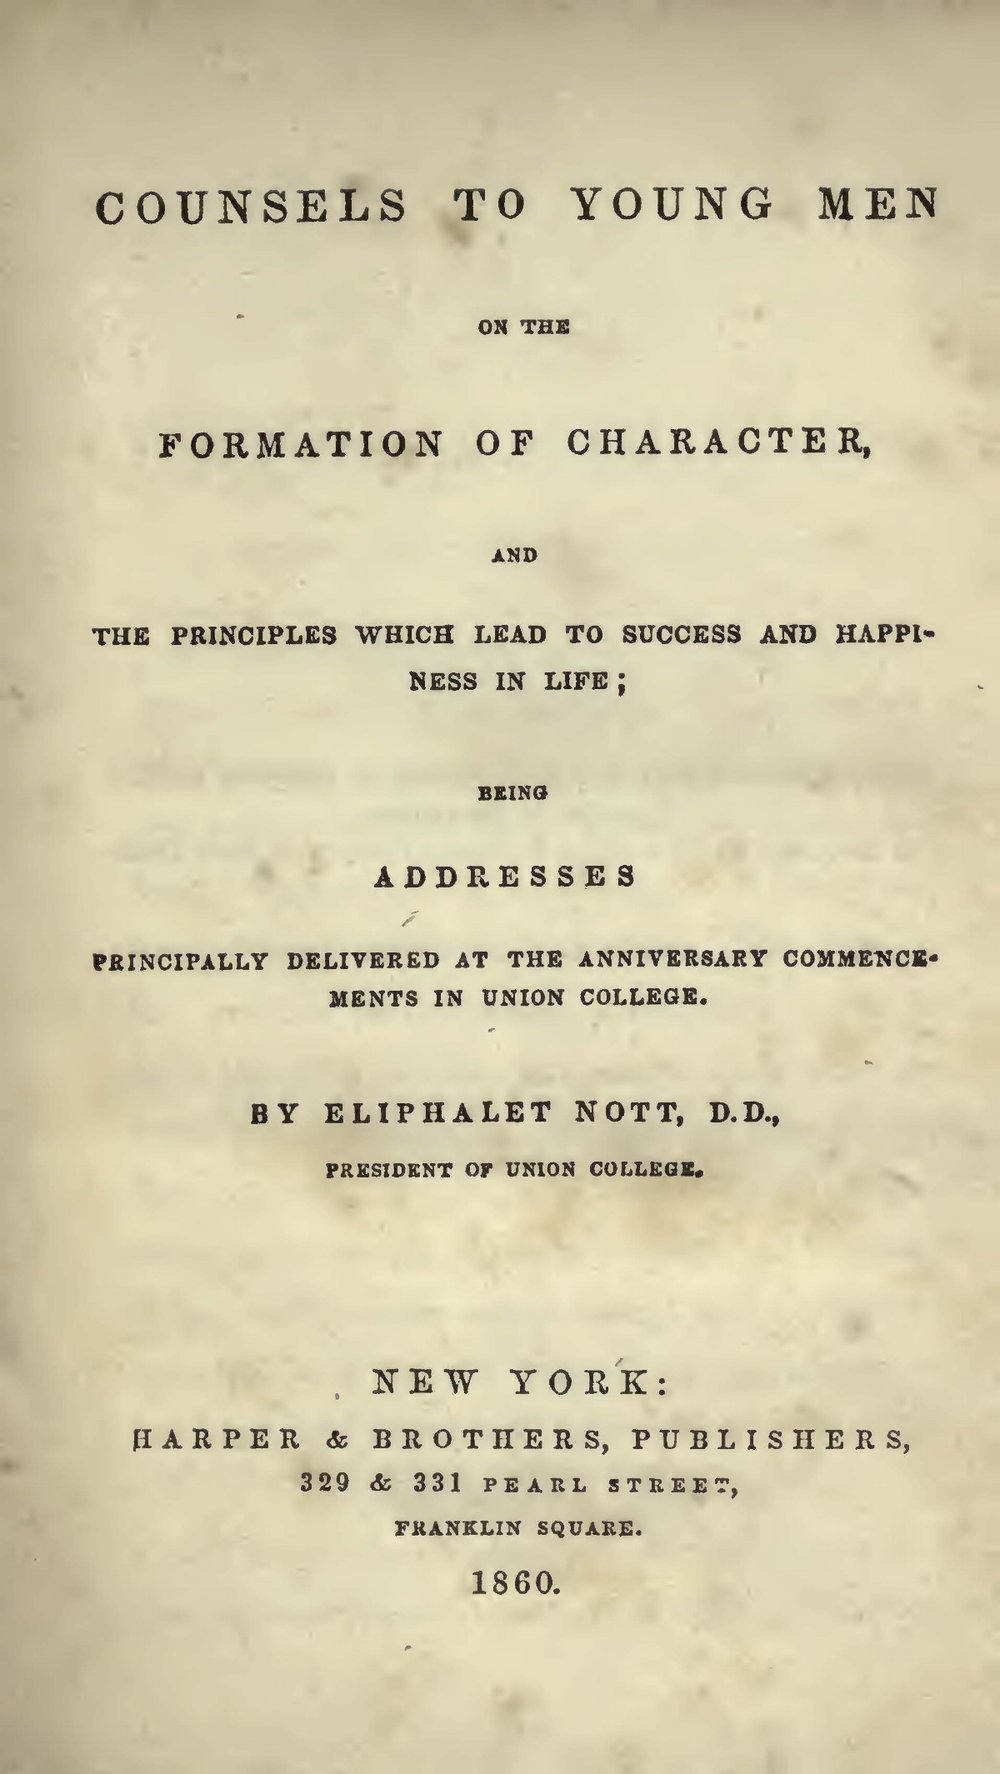 Nott, Eliphalet, Counsels to Young Men on the Formation of Character Title Page.jpg